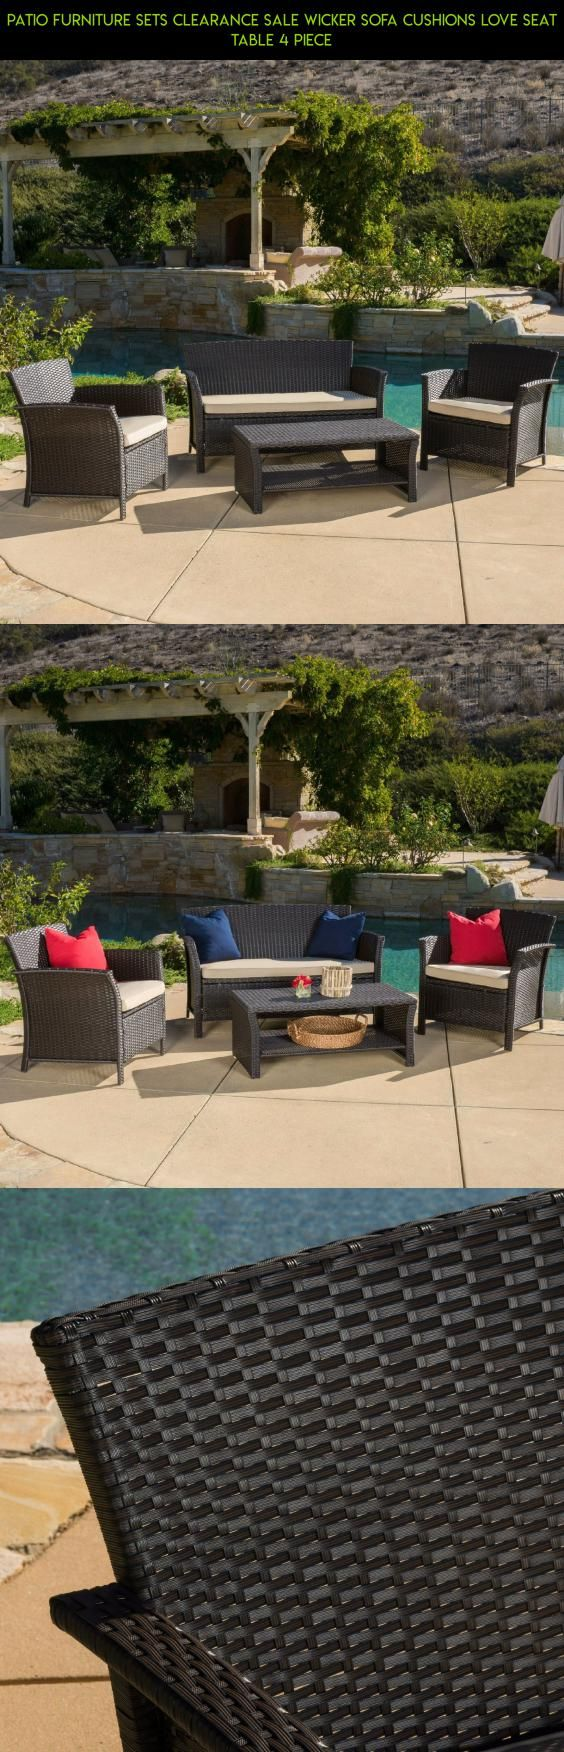 Patio Furniture Sets Clearance Sale Wicker Sofa Cushions Love Seat Table 4 Piece #tech #drone #products #kit #gadgets #fpv #camera #furniture #clearance #plans #4 #technology #parts #sets #shopping #patio #racing